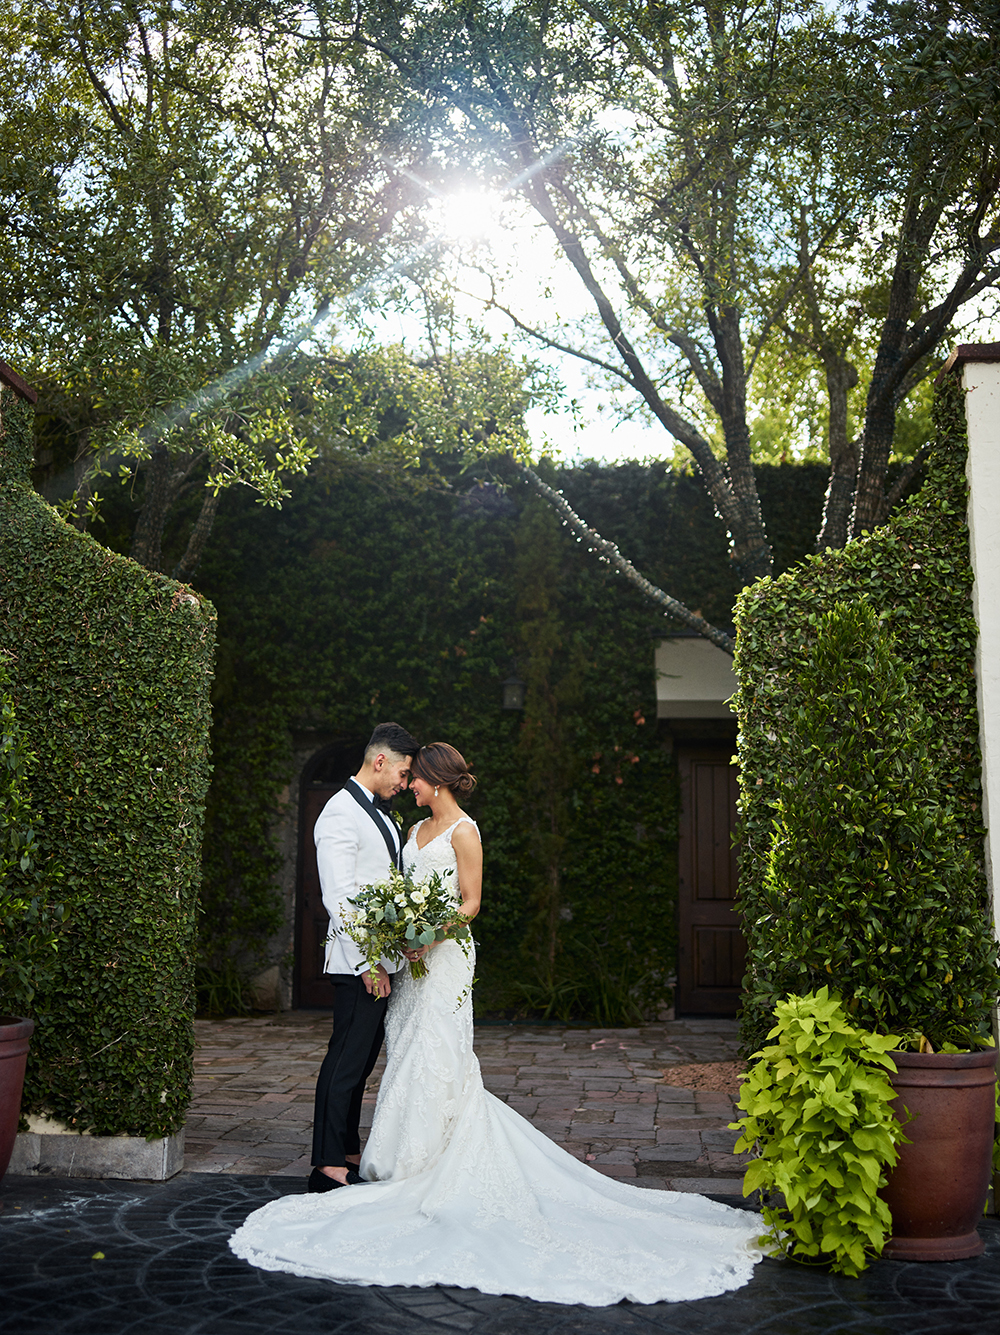 gorgeous wedding photography for fall wedding in garden